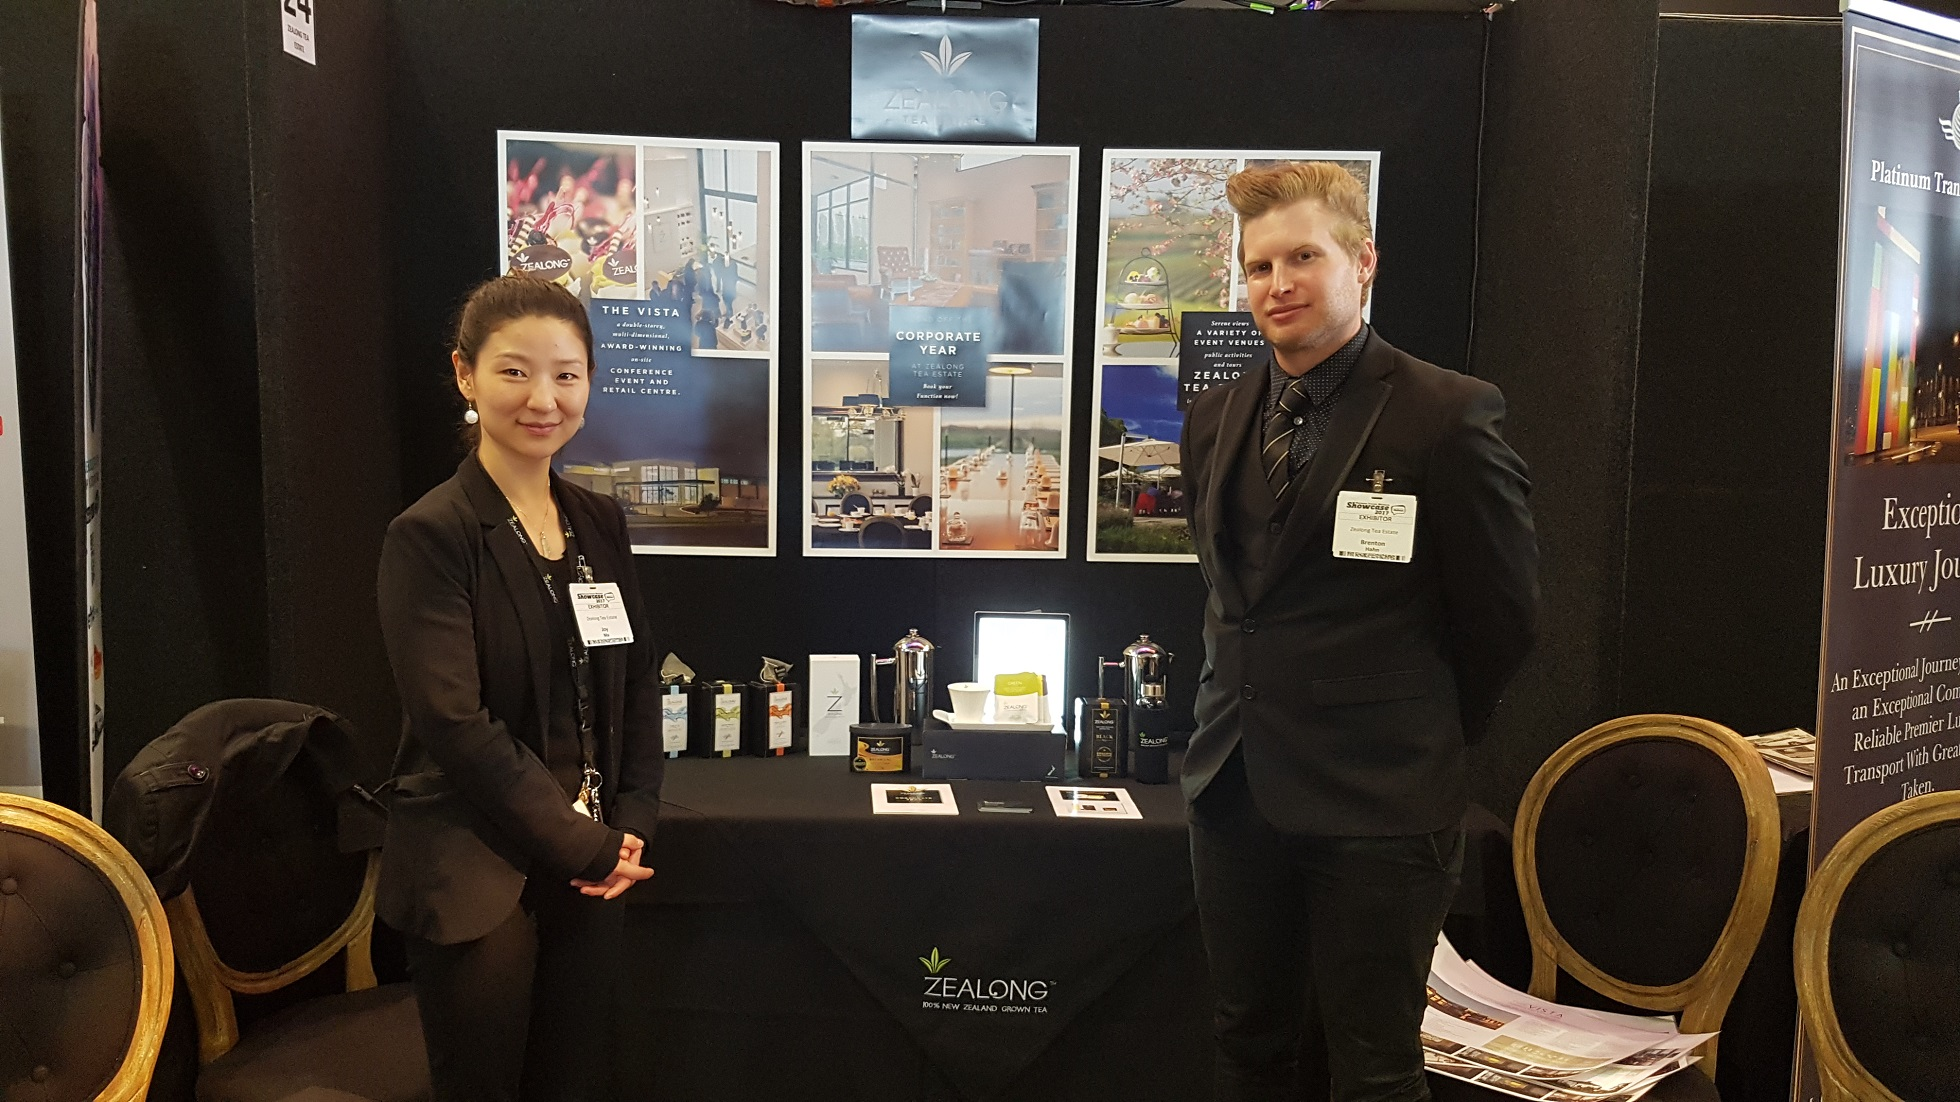 Business Events Waikato Showcase Zealong Tea | Platinum Transfers & Tours Hamilton NZ